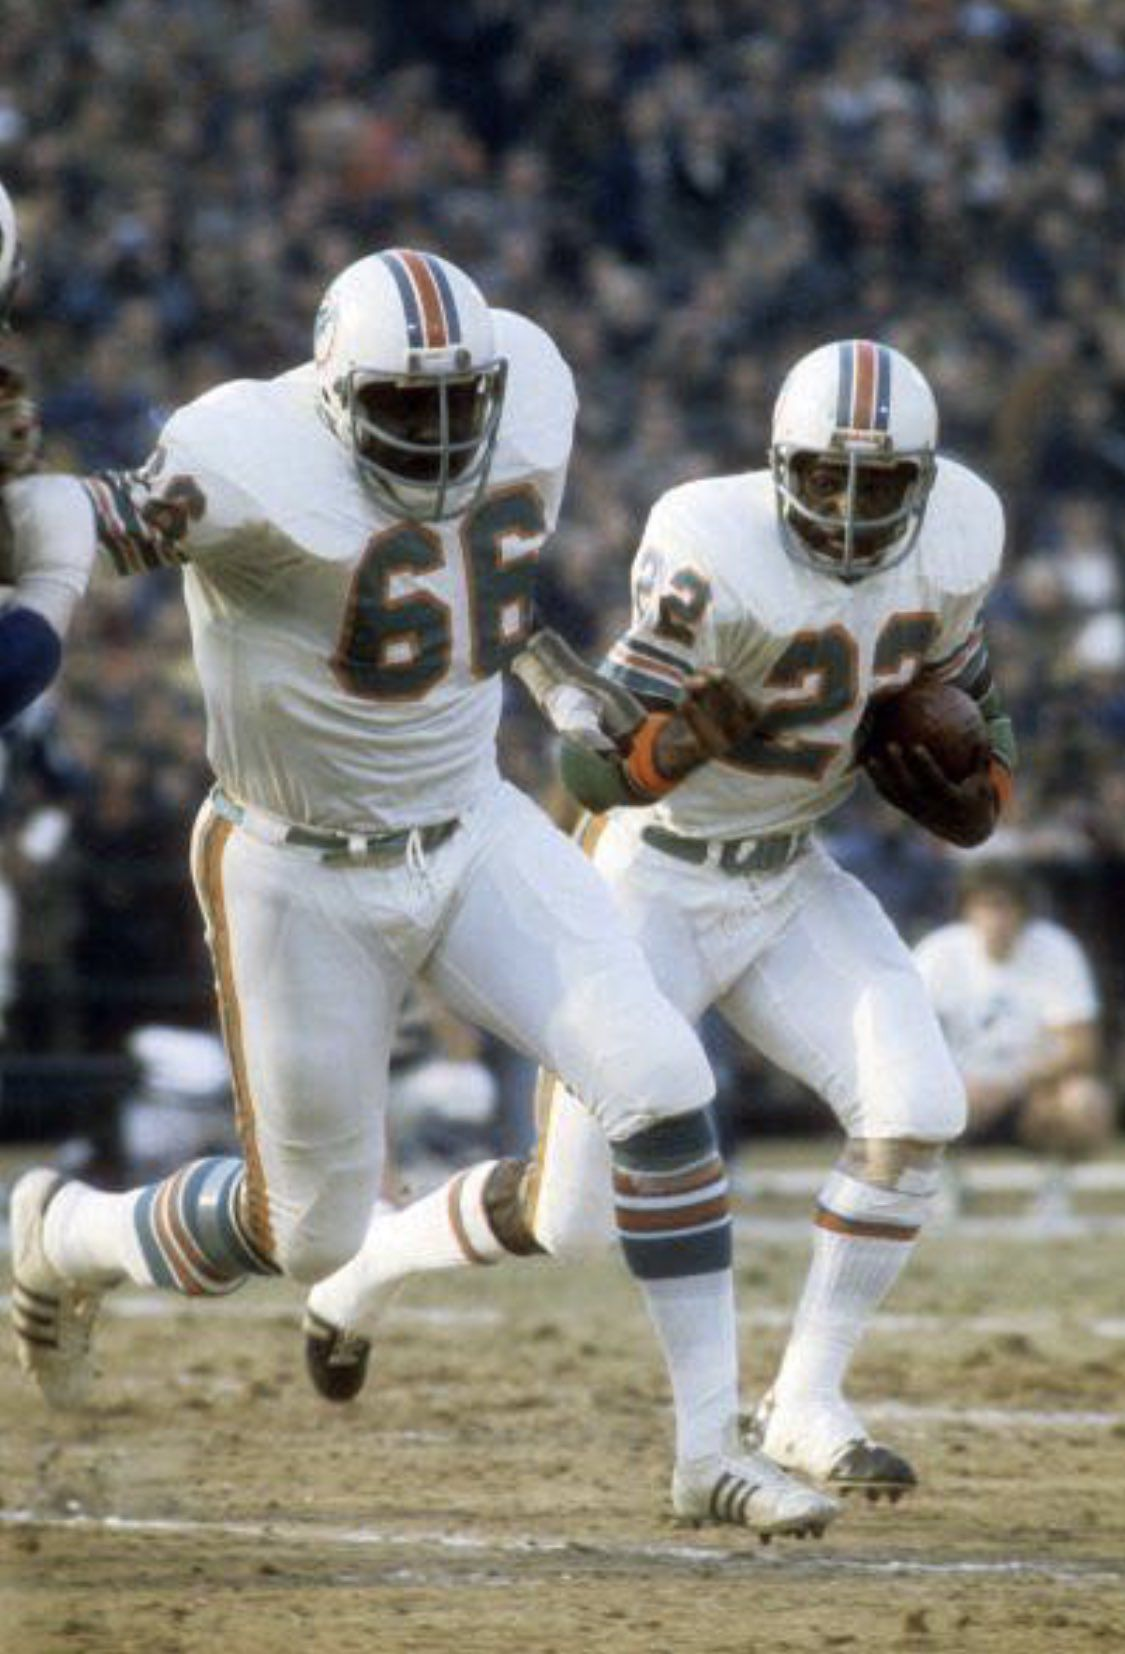 Pin by Rick on Vintage NFL   Miami dolphins football ...